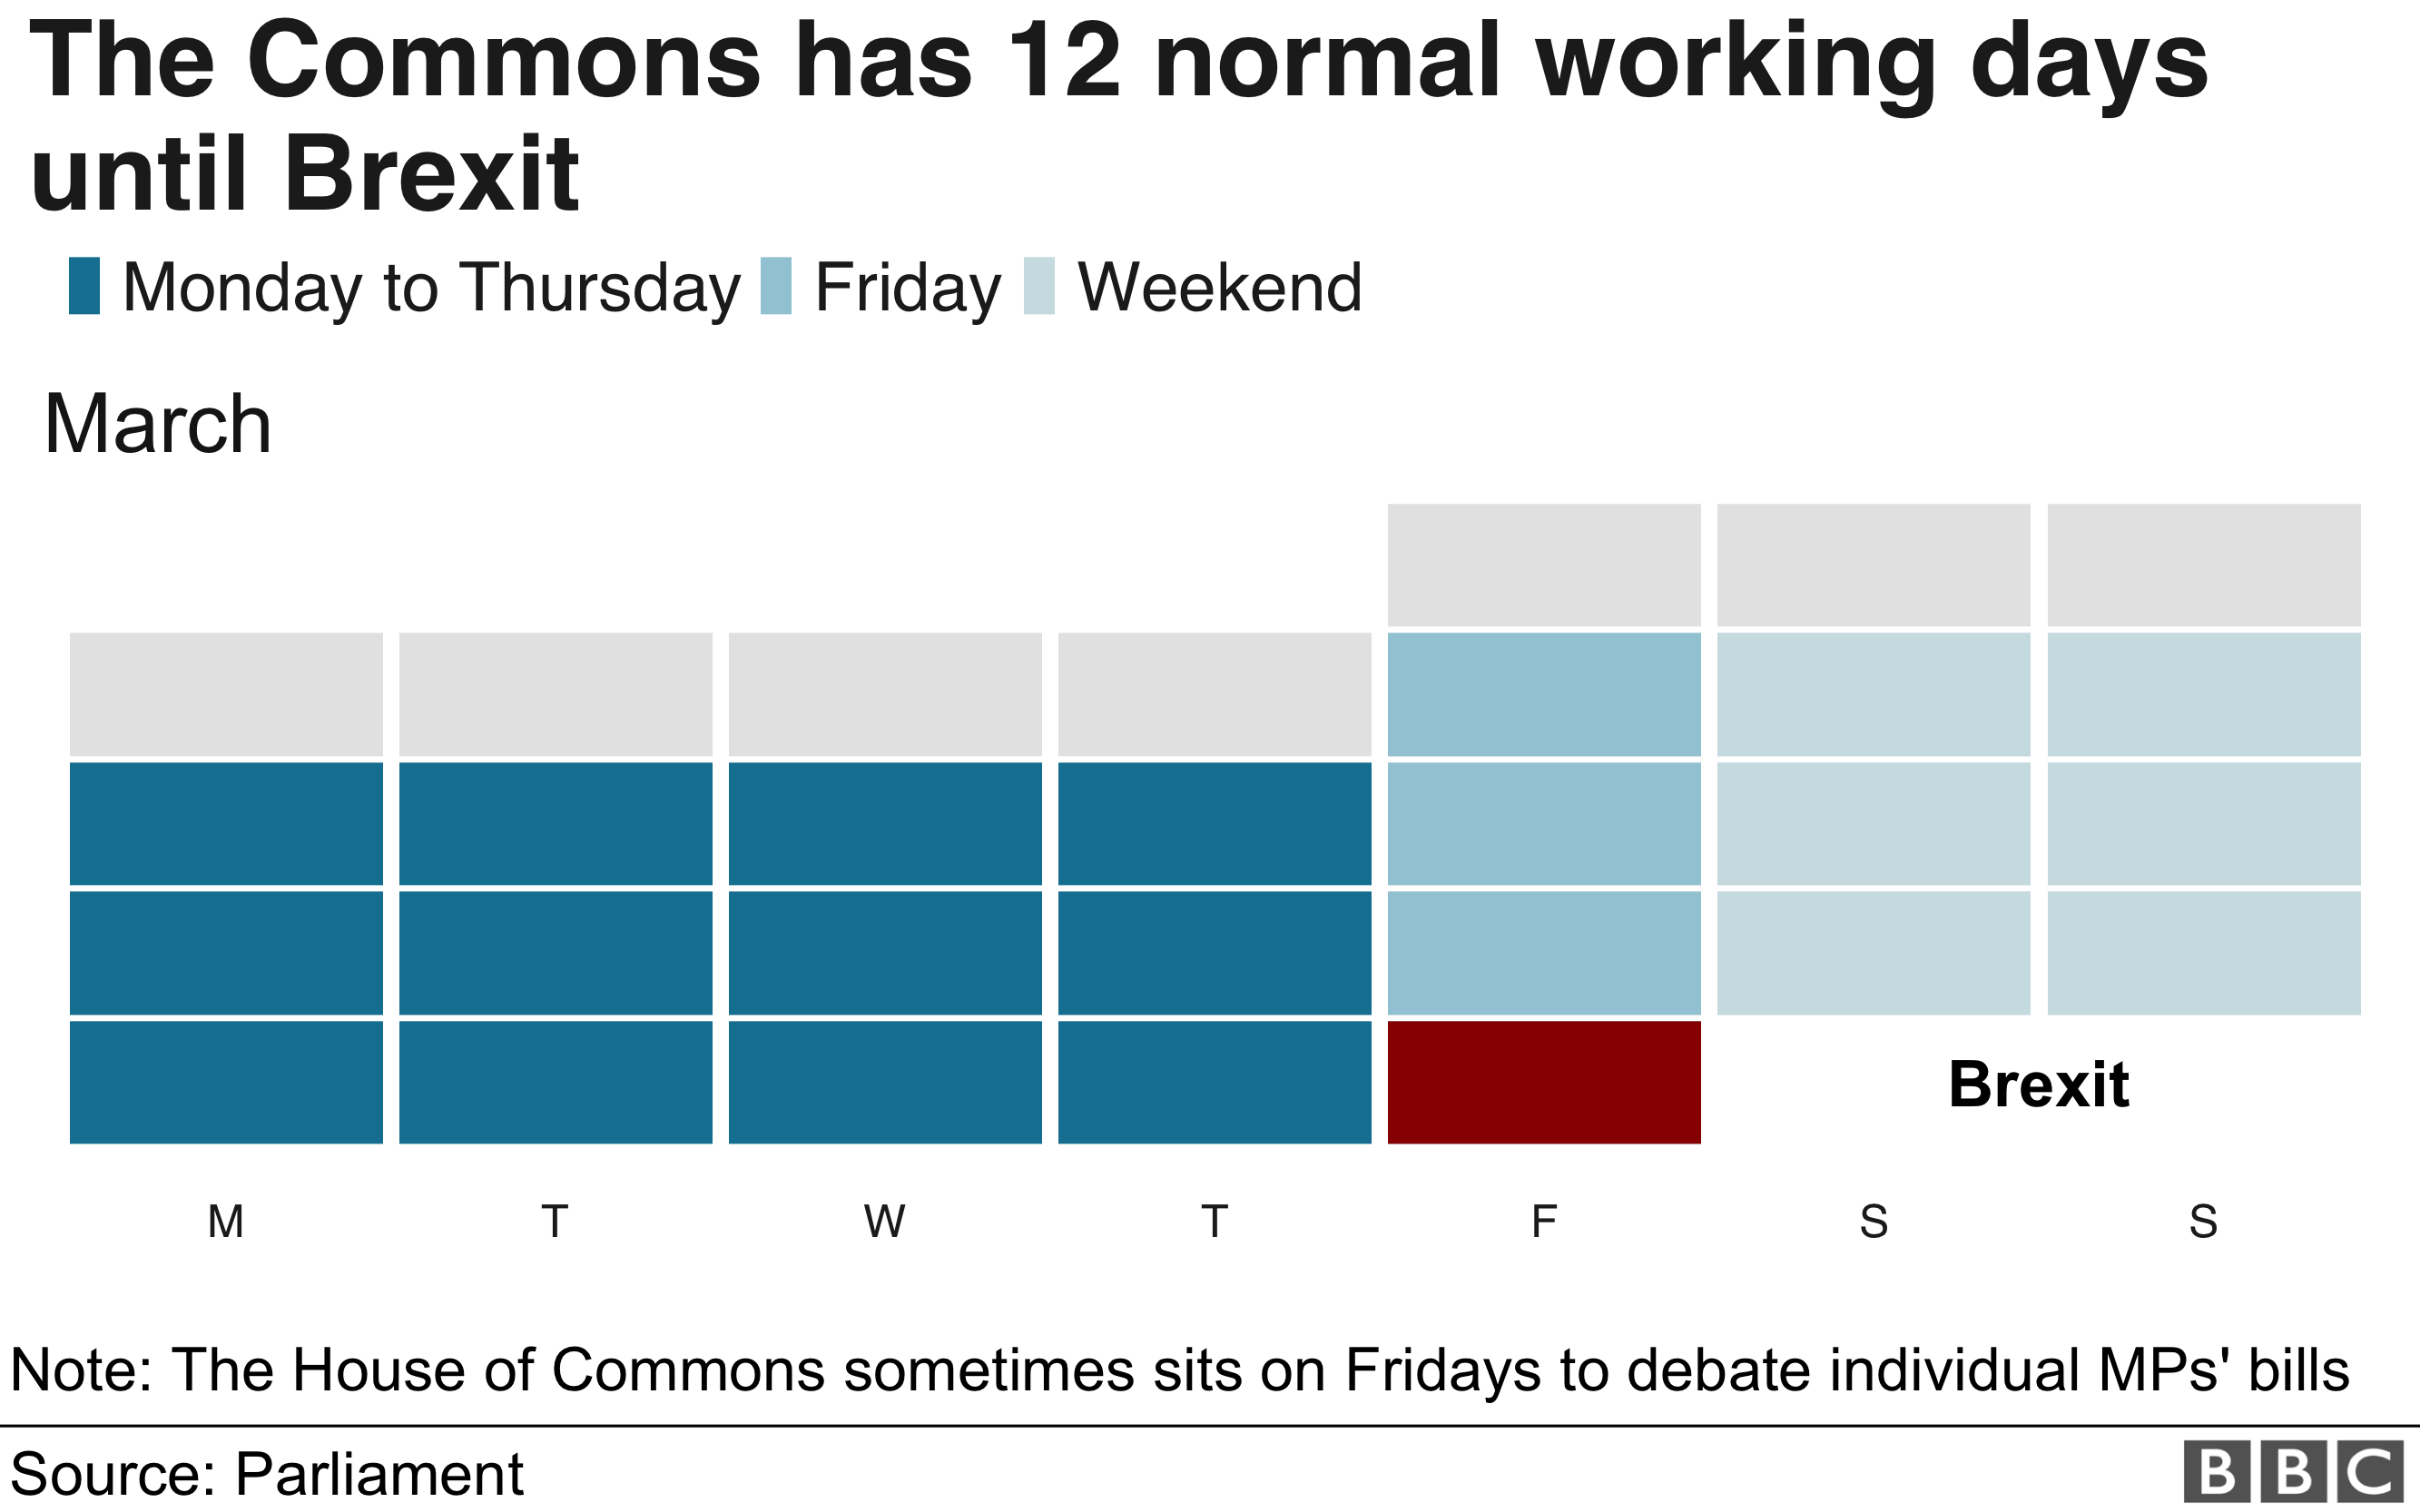 Graphic showing the number of sitting days in Parliament before the UK is due to leave the EU